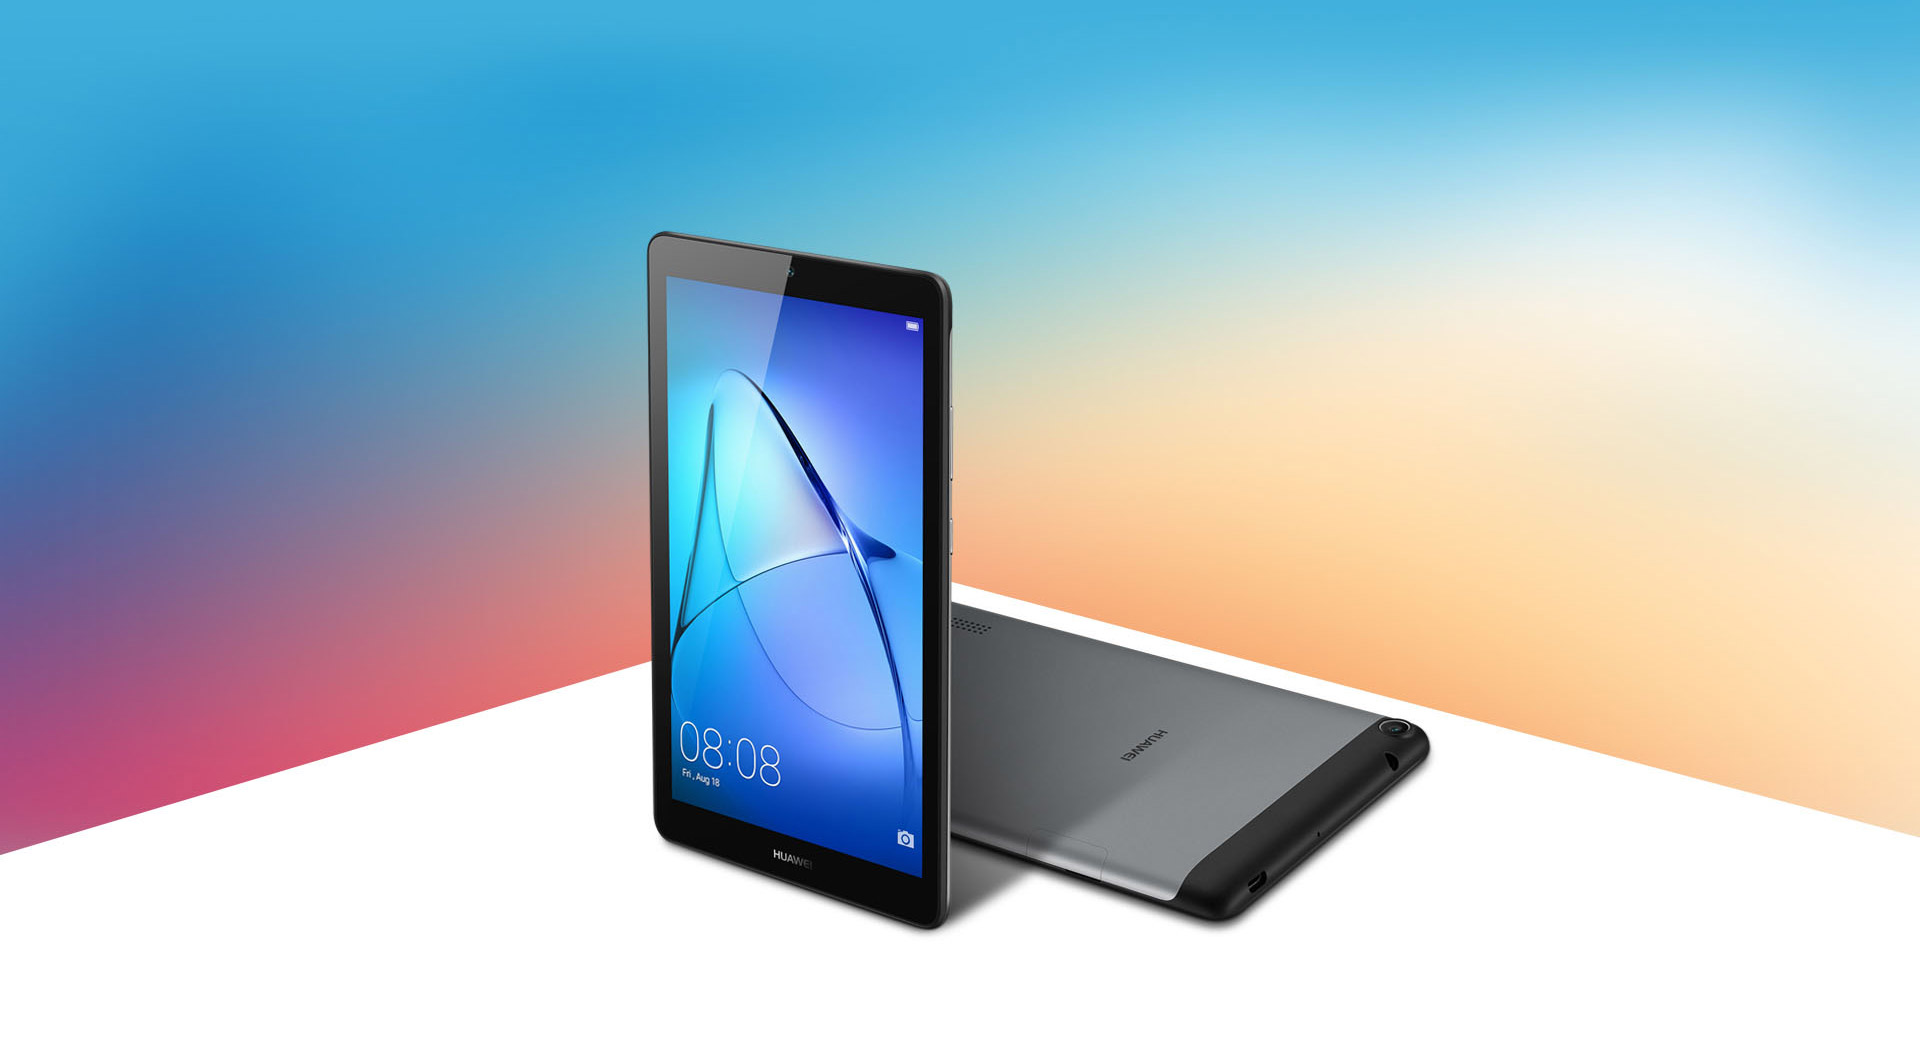 Huawei MediaPad T3 of 7 and 8 Inches: Two Tablets of Range Media with Aluminum Body